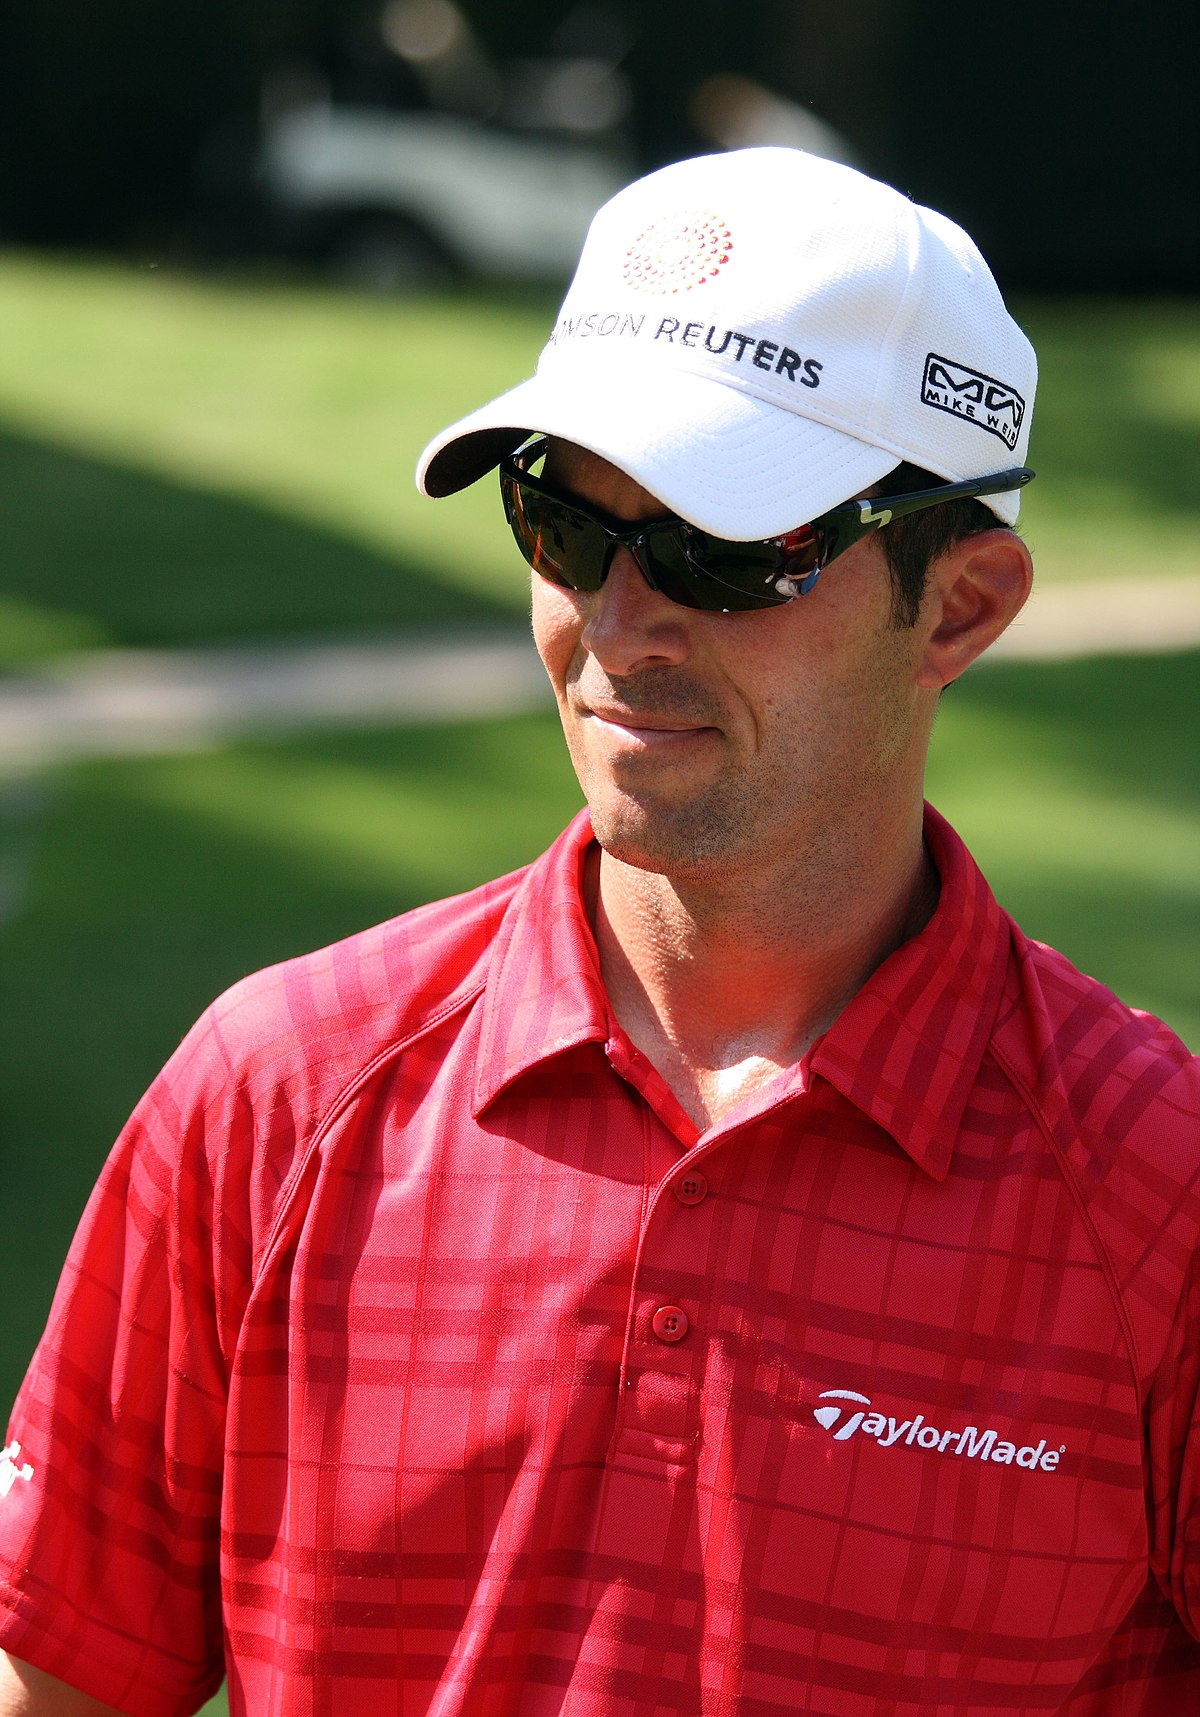 Mike Weir - Wikipedia